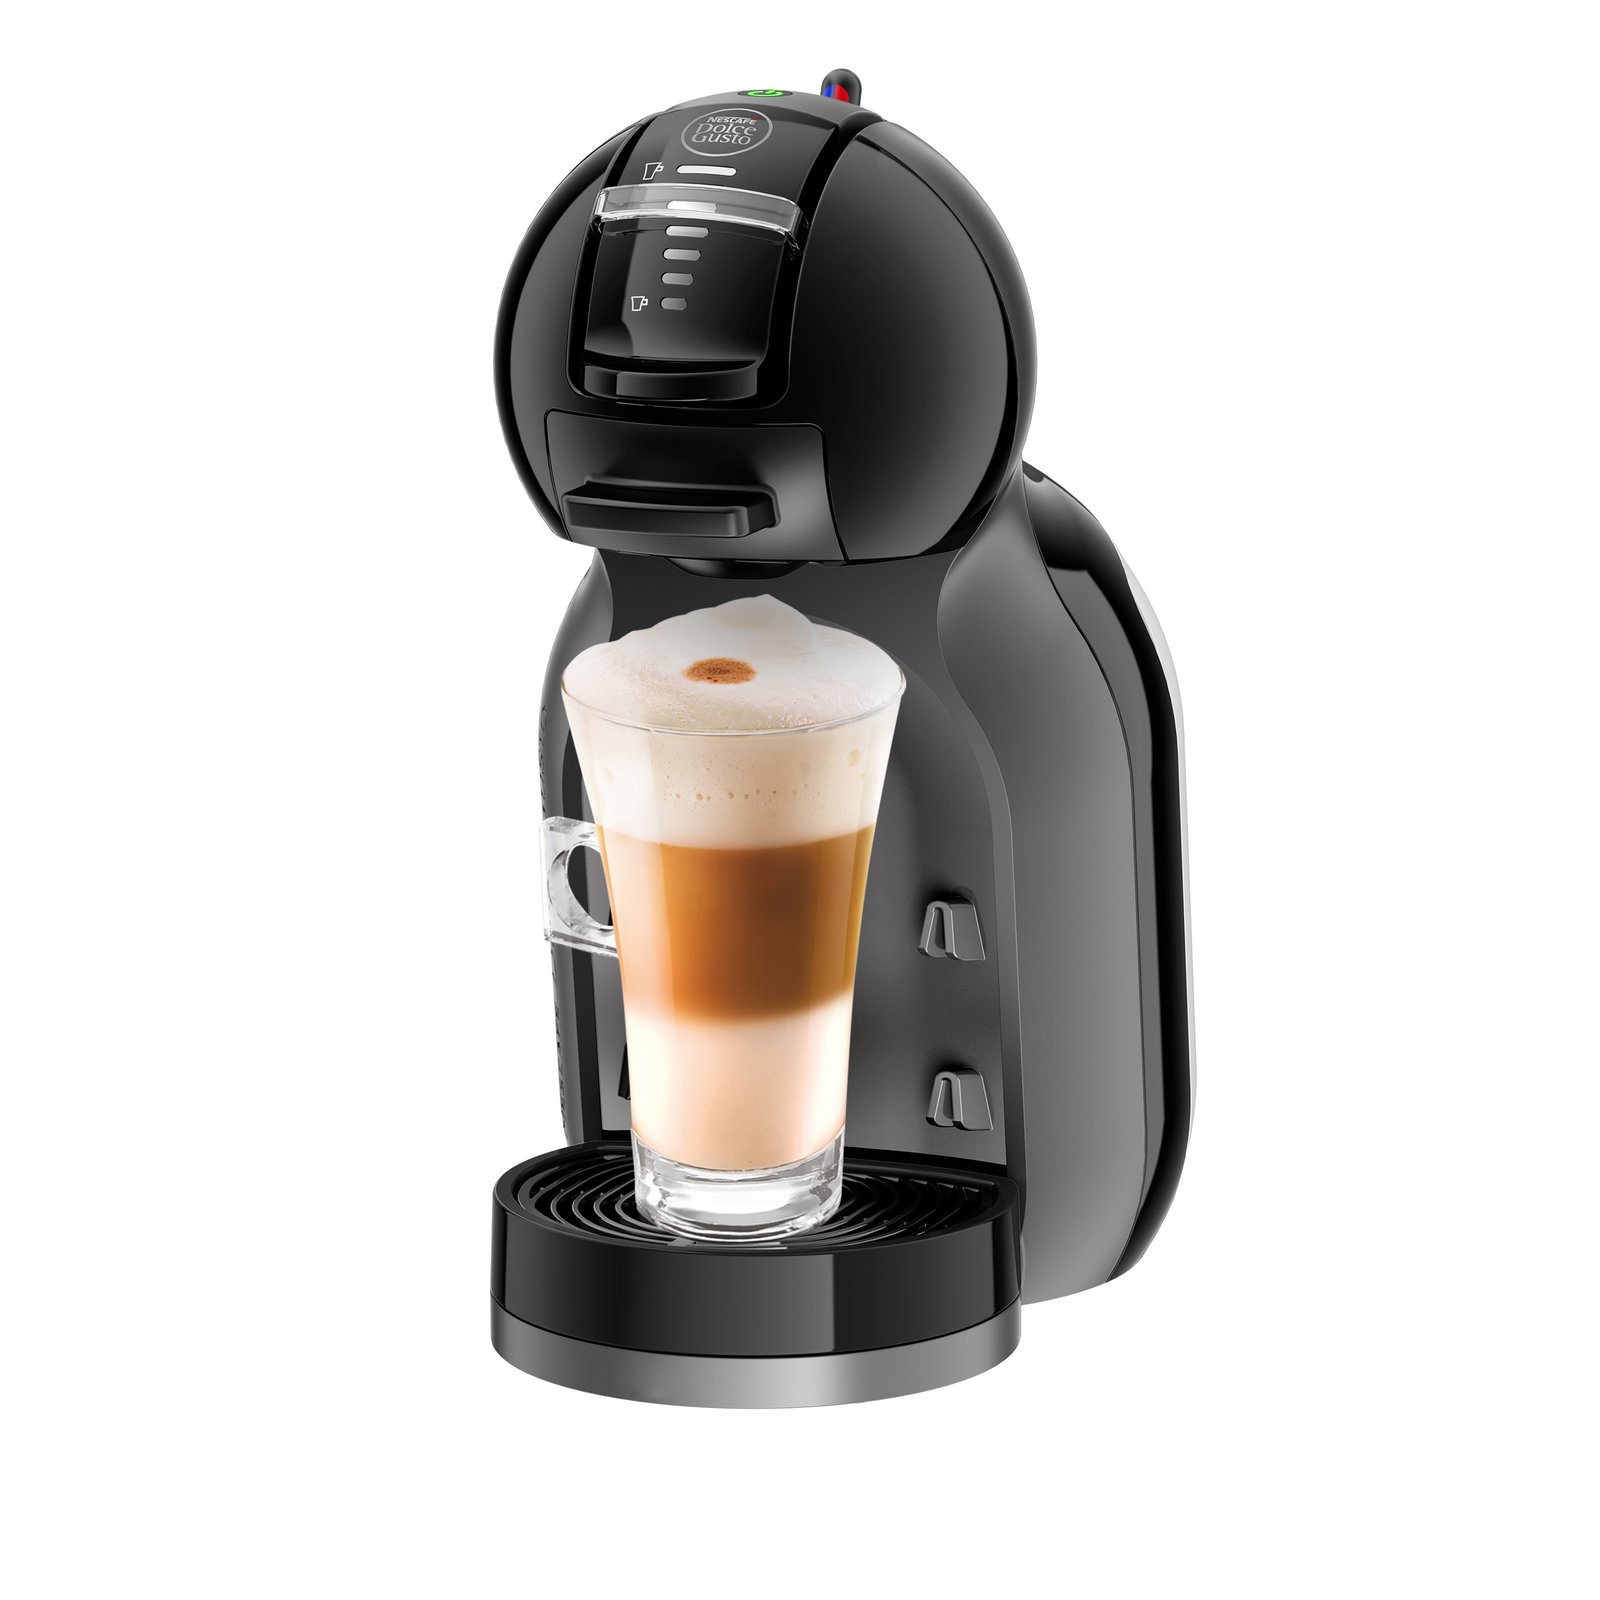 nescafe dolce gusto mini me black coffee machine at. Black Bedroom Furniture Sets. Home Design Ideas